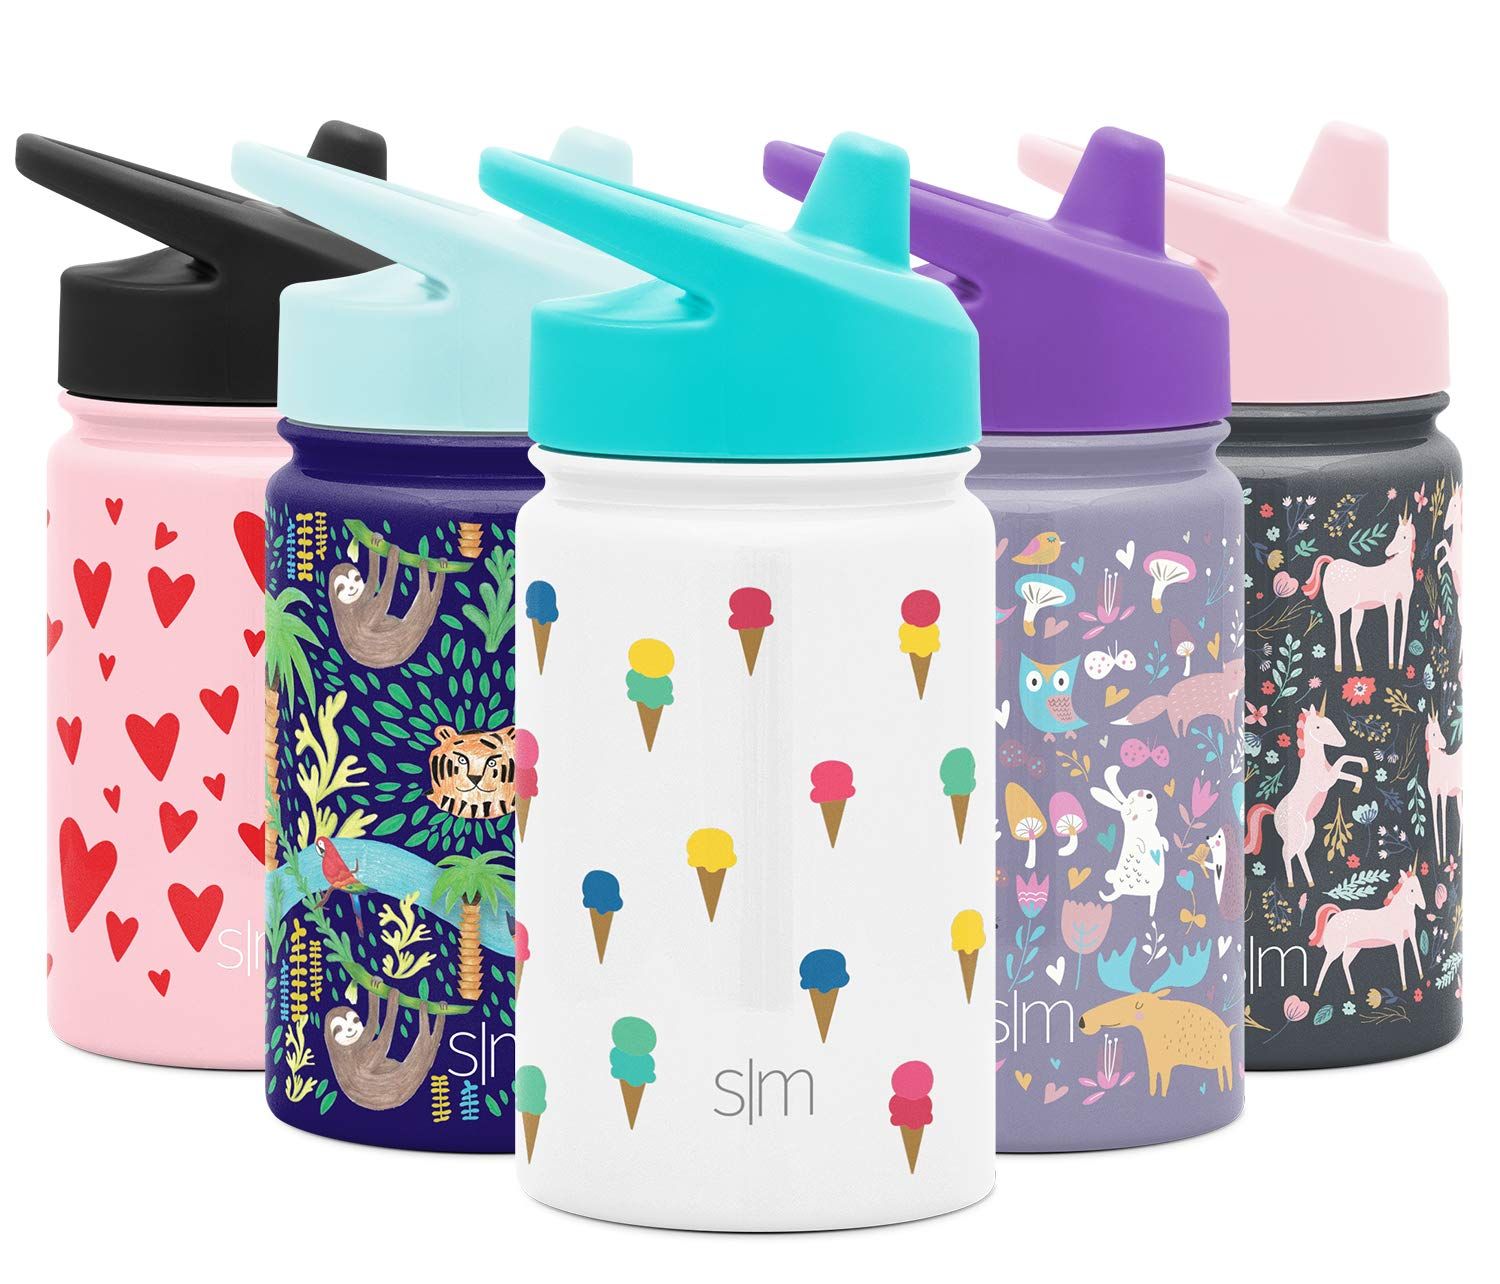 Simple Modern Kids Summit Sippy Cup Thermos 10oz - Stainless Steel Toddler Water Bottle Vacuum Insulated Girls and Boys Hydro Travel Cup Flask -Ice Cream Cones Purple